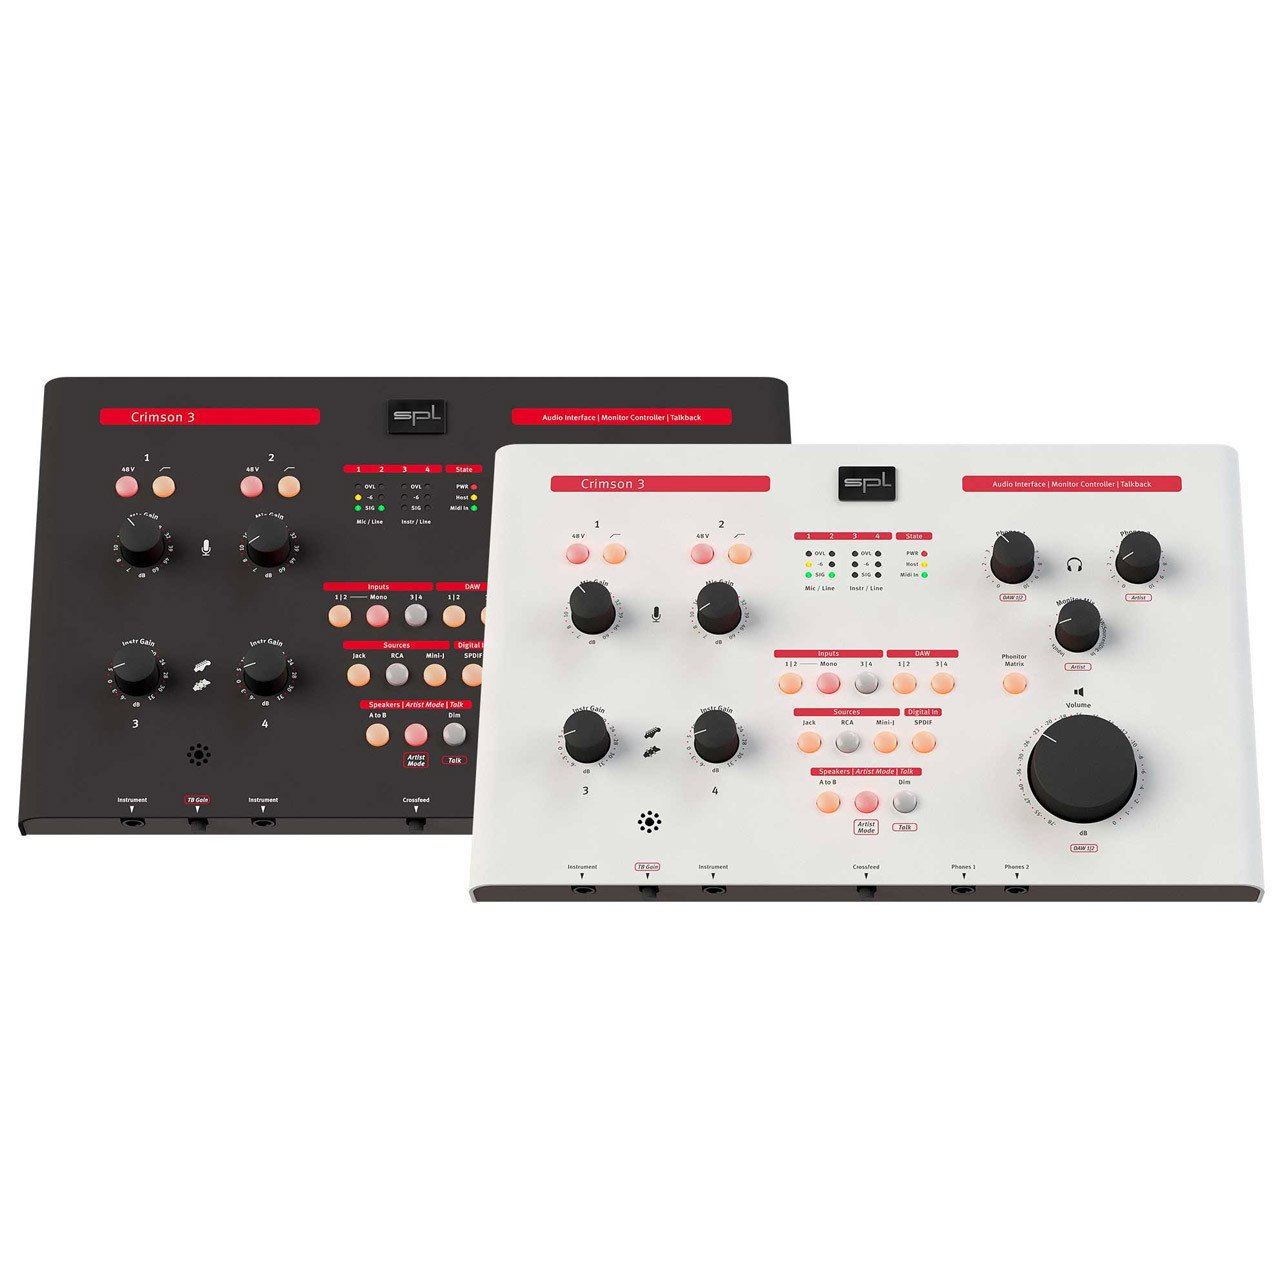 Monitor Controllers - SPL Crimson 3.0 Audio Interface With Analog Monitoring